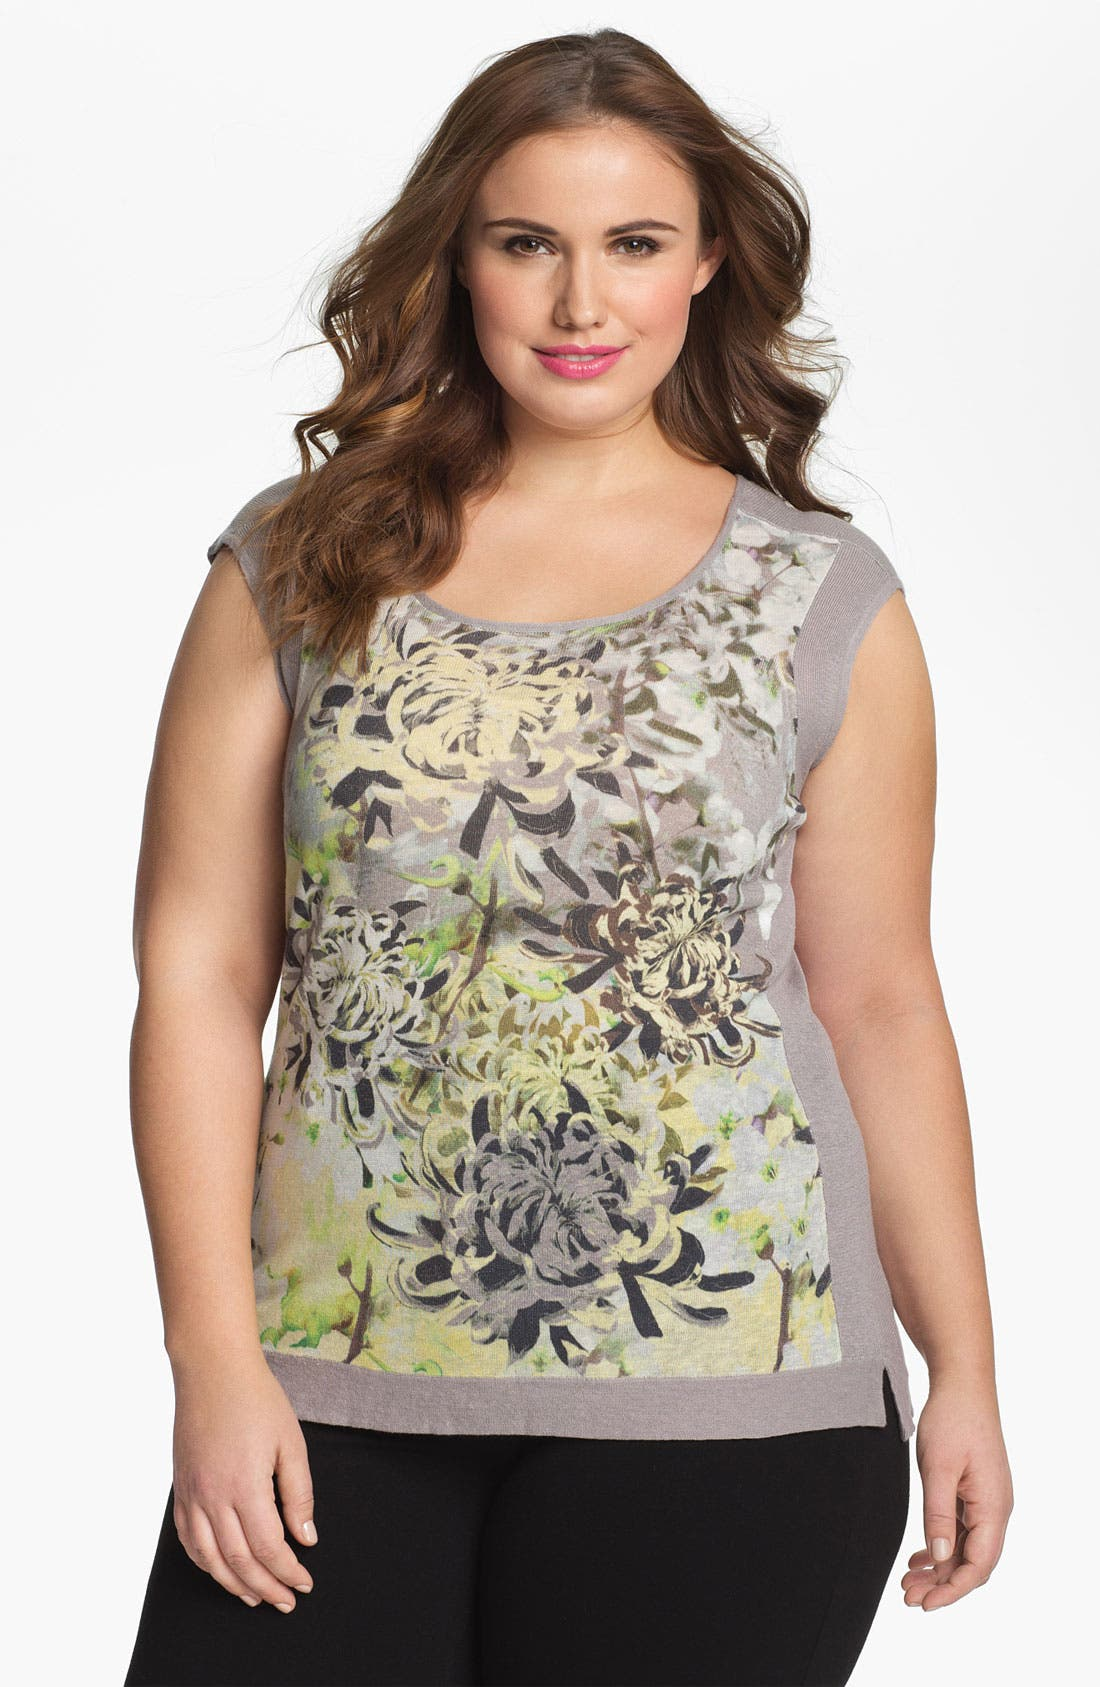 Alternate Image 1 Selected - Nic + Zoe 'Spring Garden' Print Cap Sleeve Top (Plus Size)